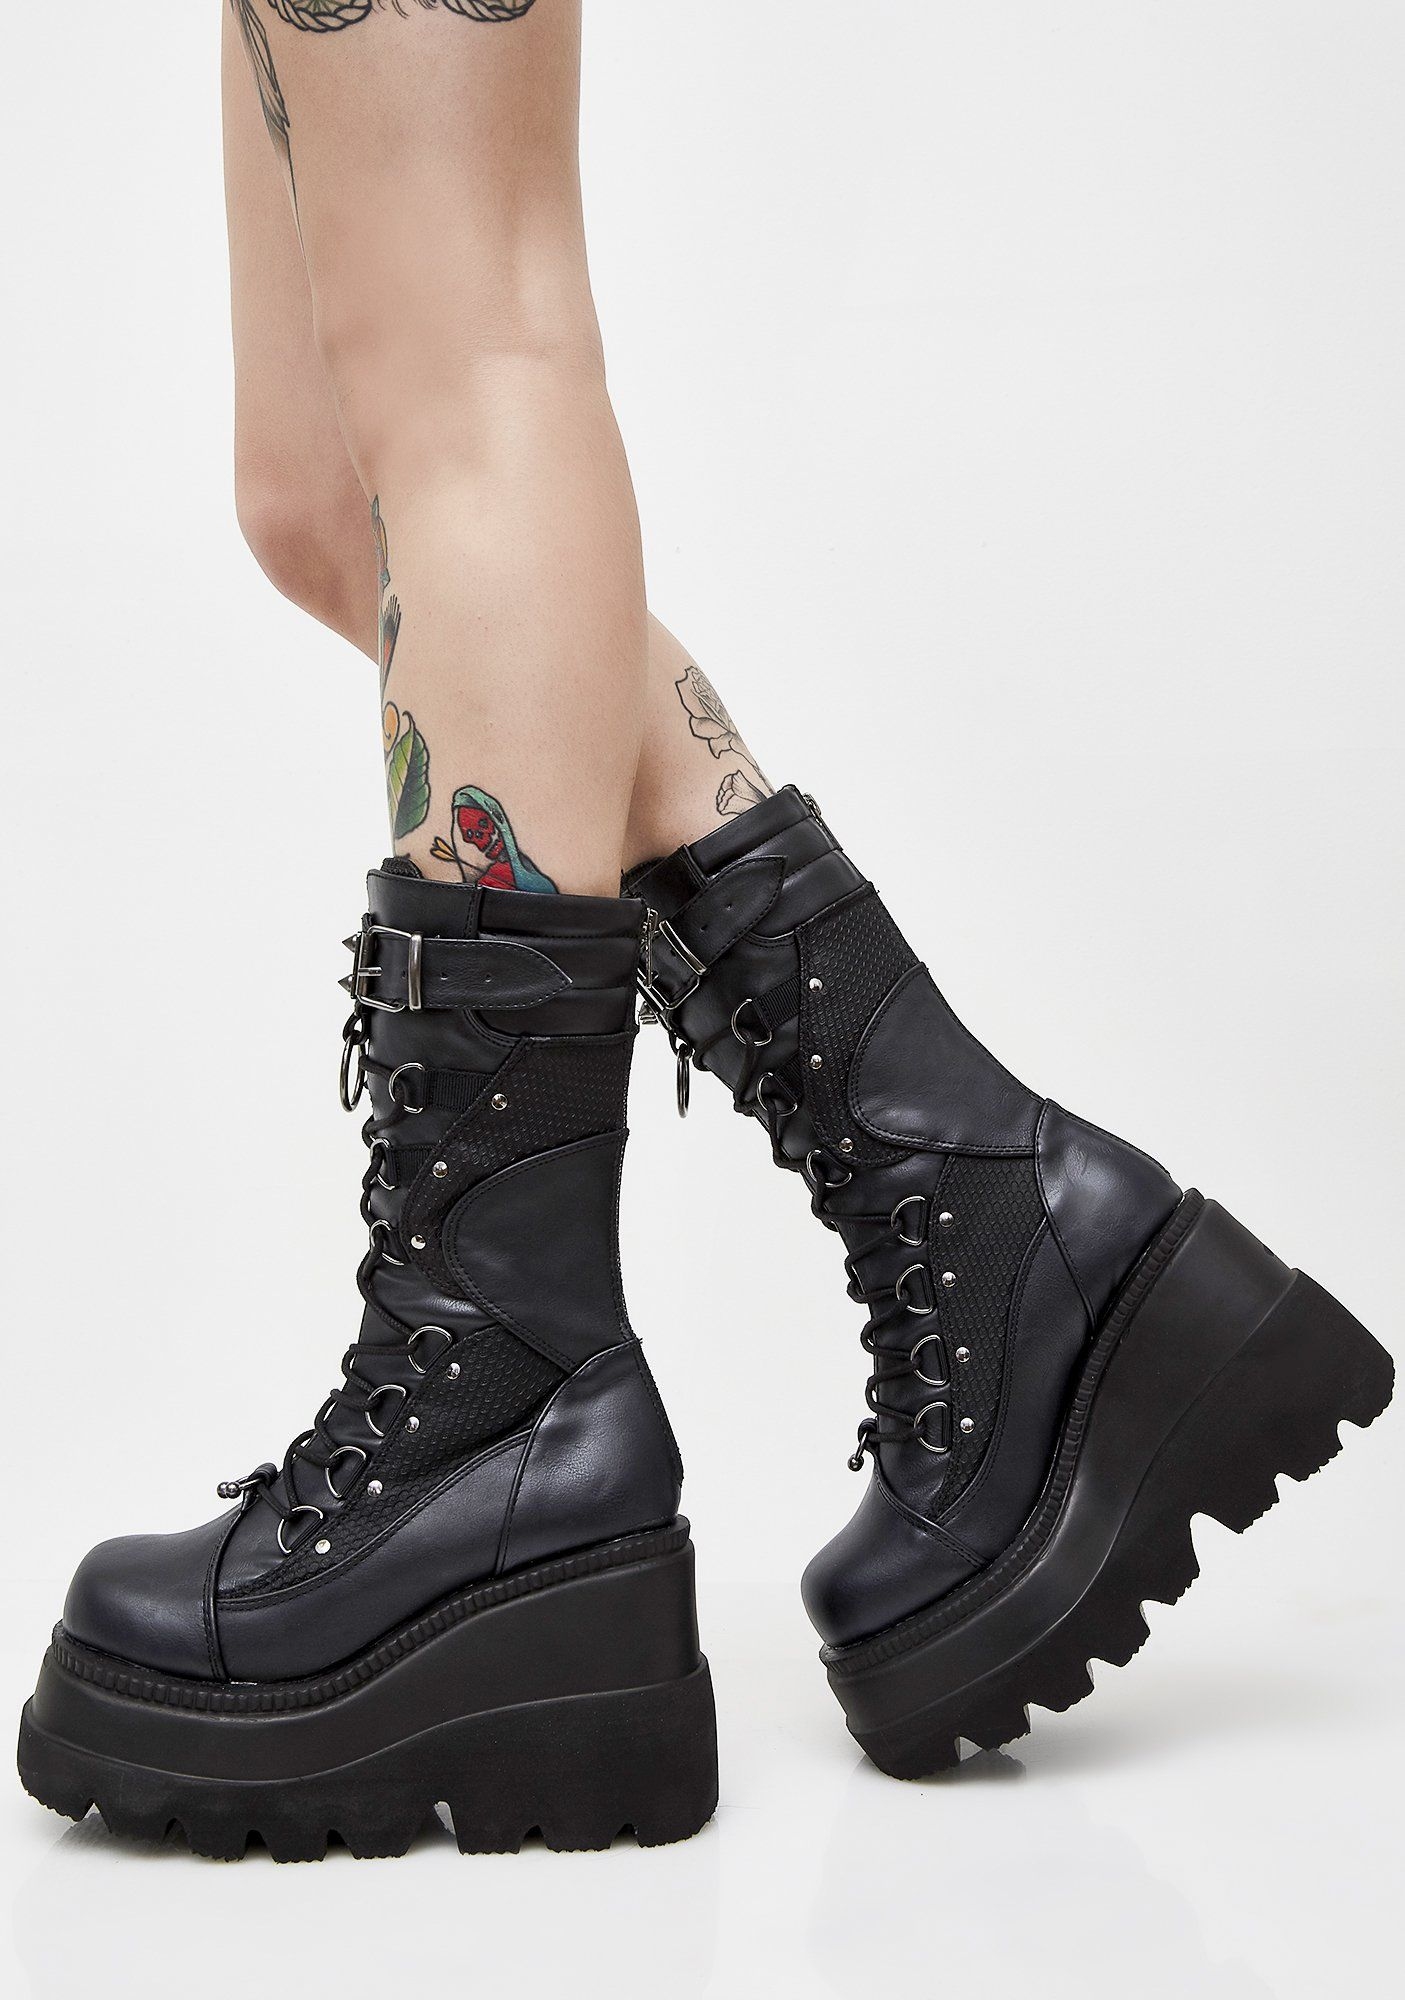 4afa5fd115c Demonia Charade 206 Black Corset Lace Up Boots in 2019